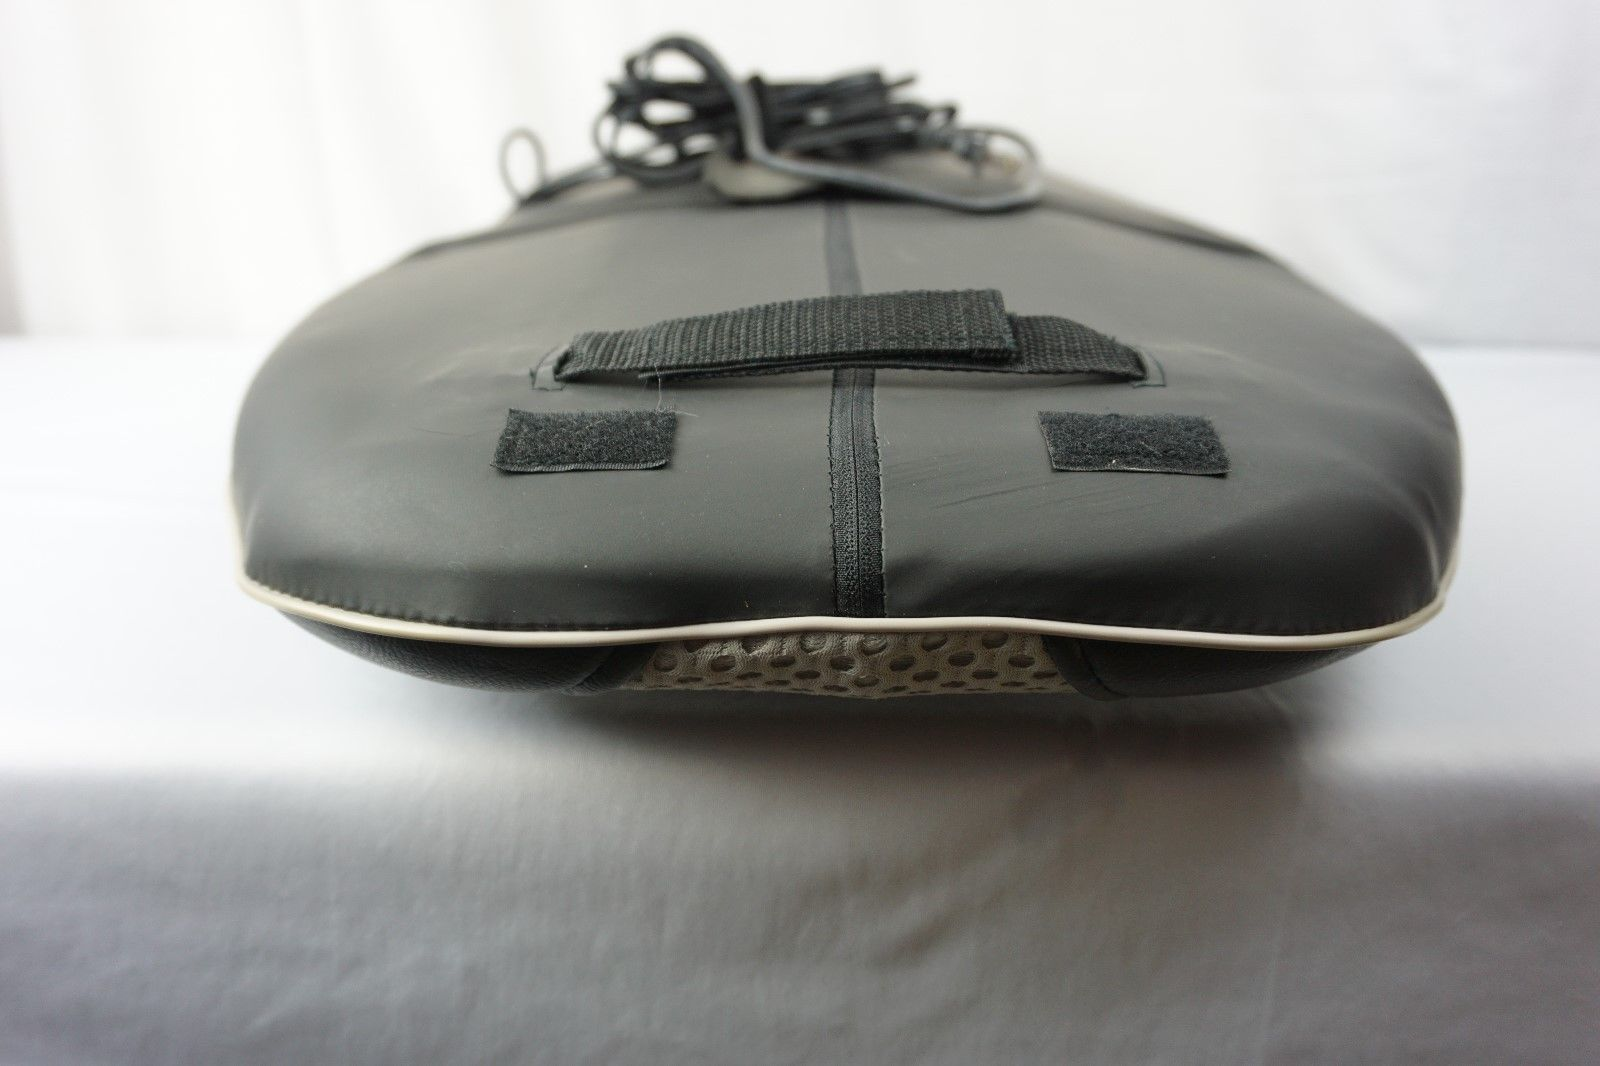 Homedics Shiatsu & Rolling Massaging Cushion Dual Massage Mechanism SBM-300PA